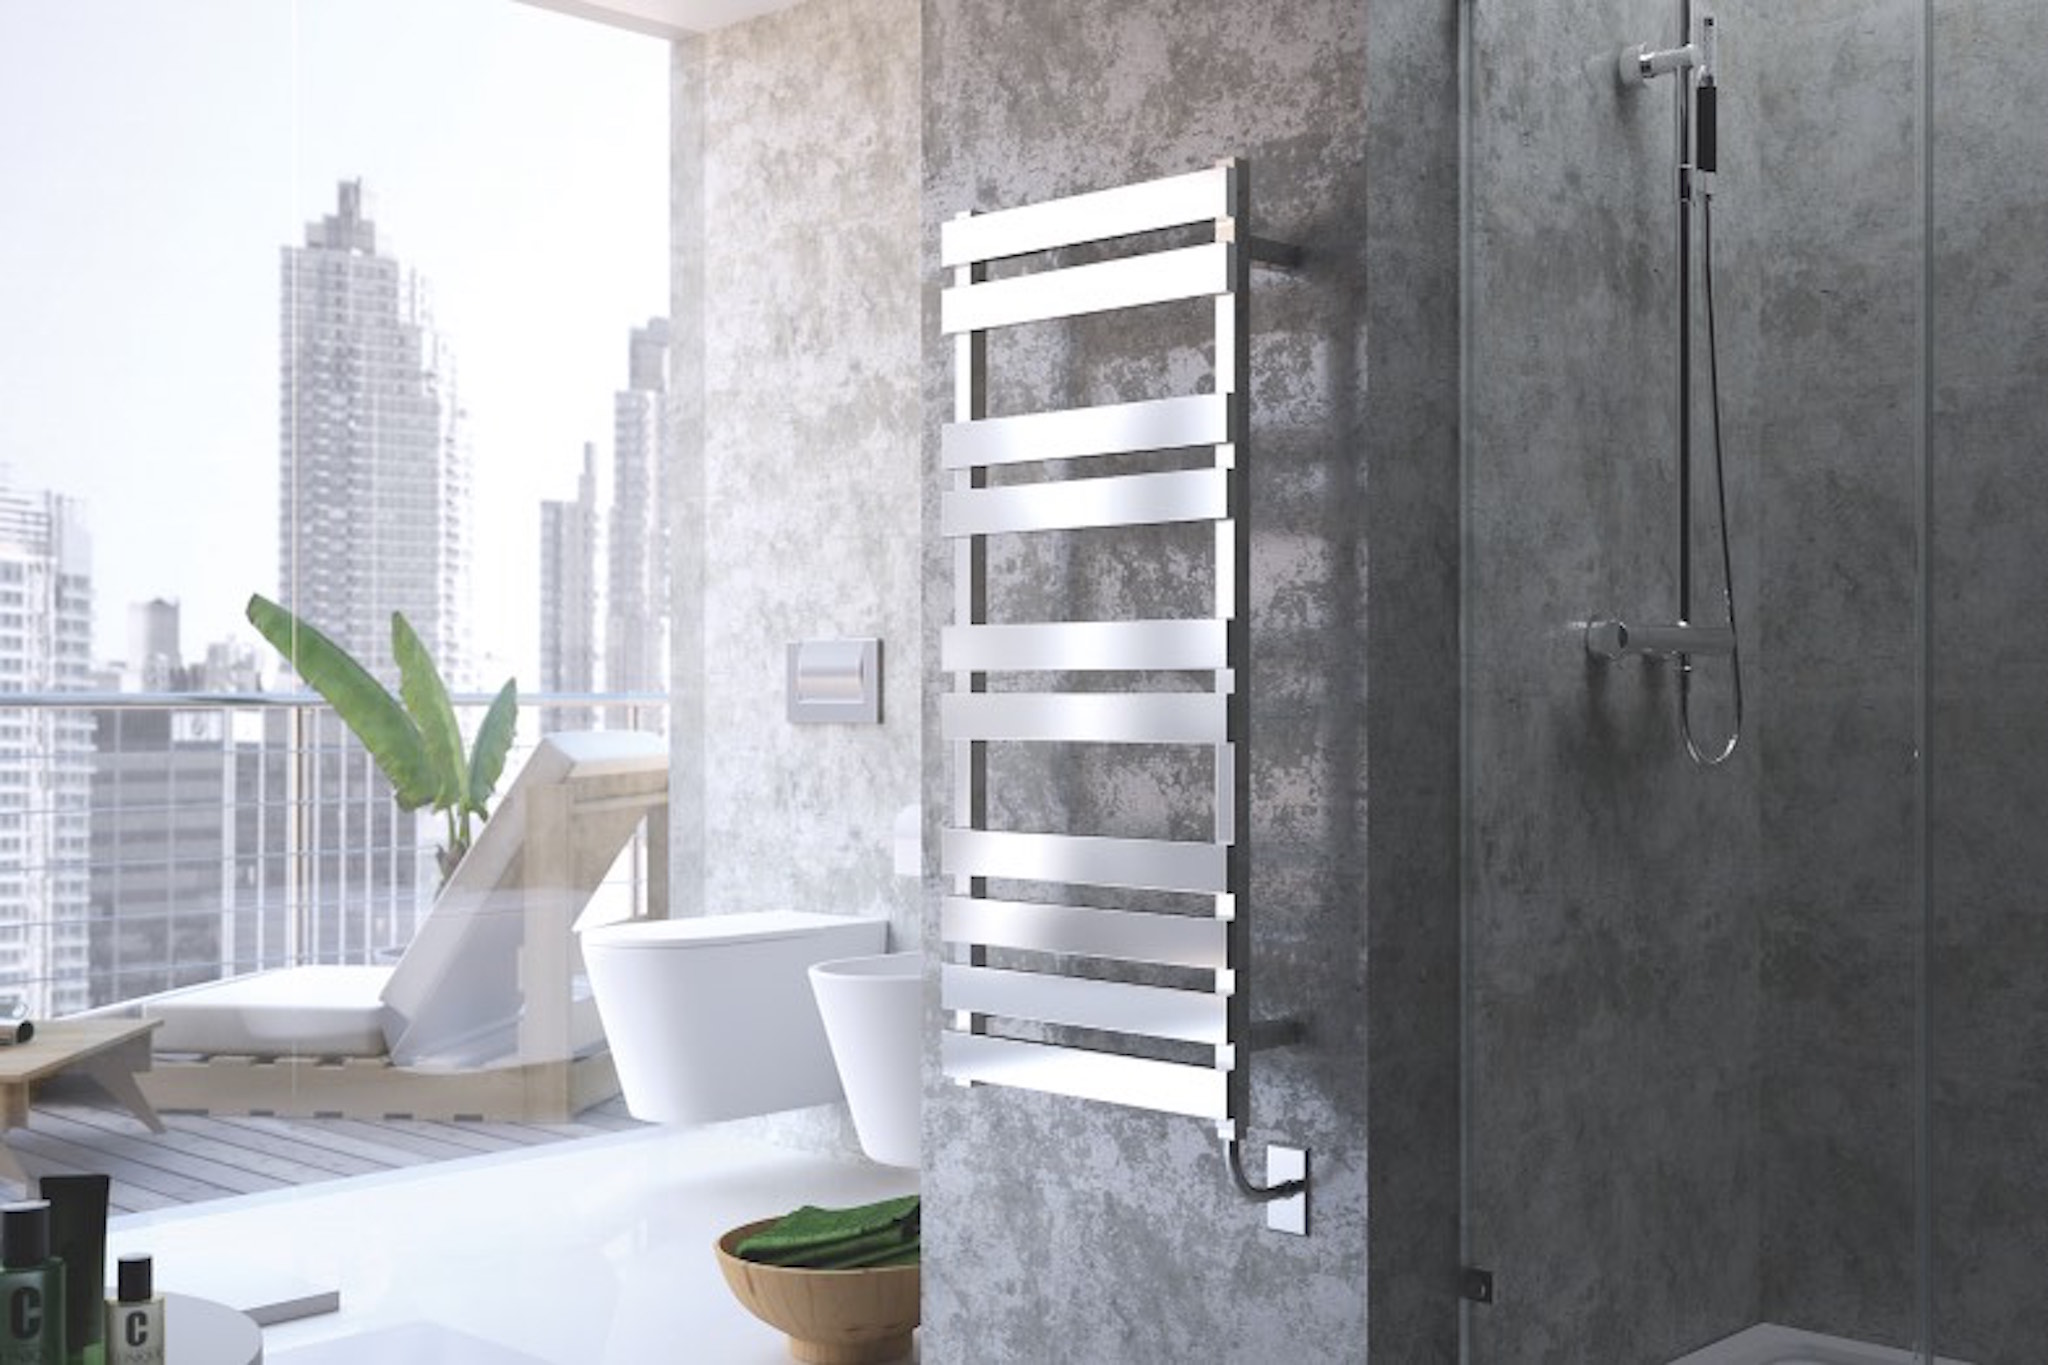 Towel Bar Home Depot | Amba Towel Warmers | Personal Towel Warmer